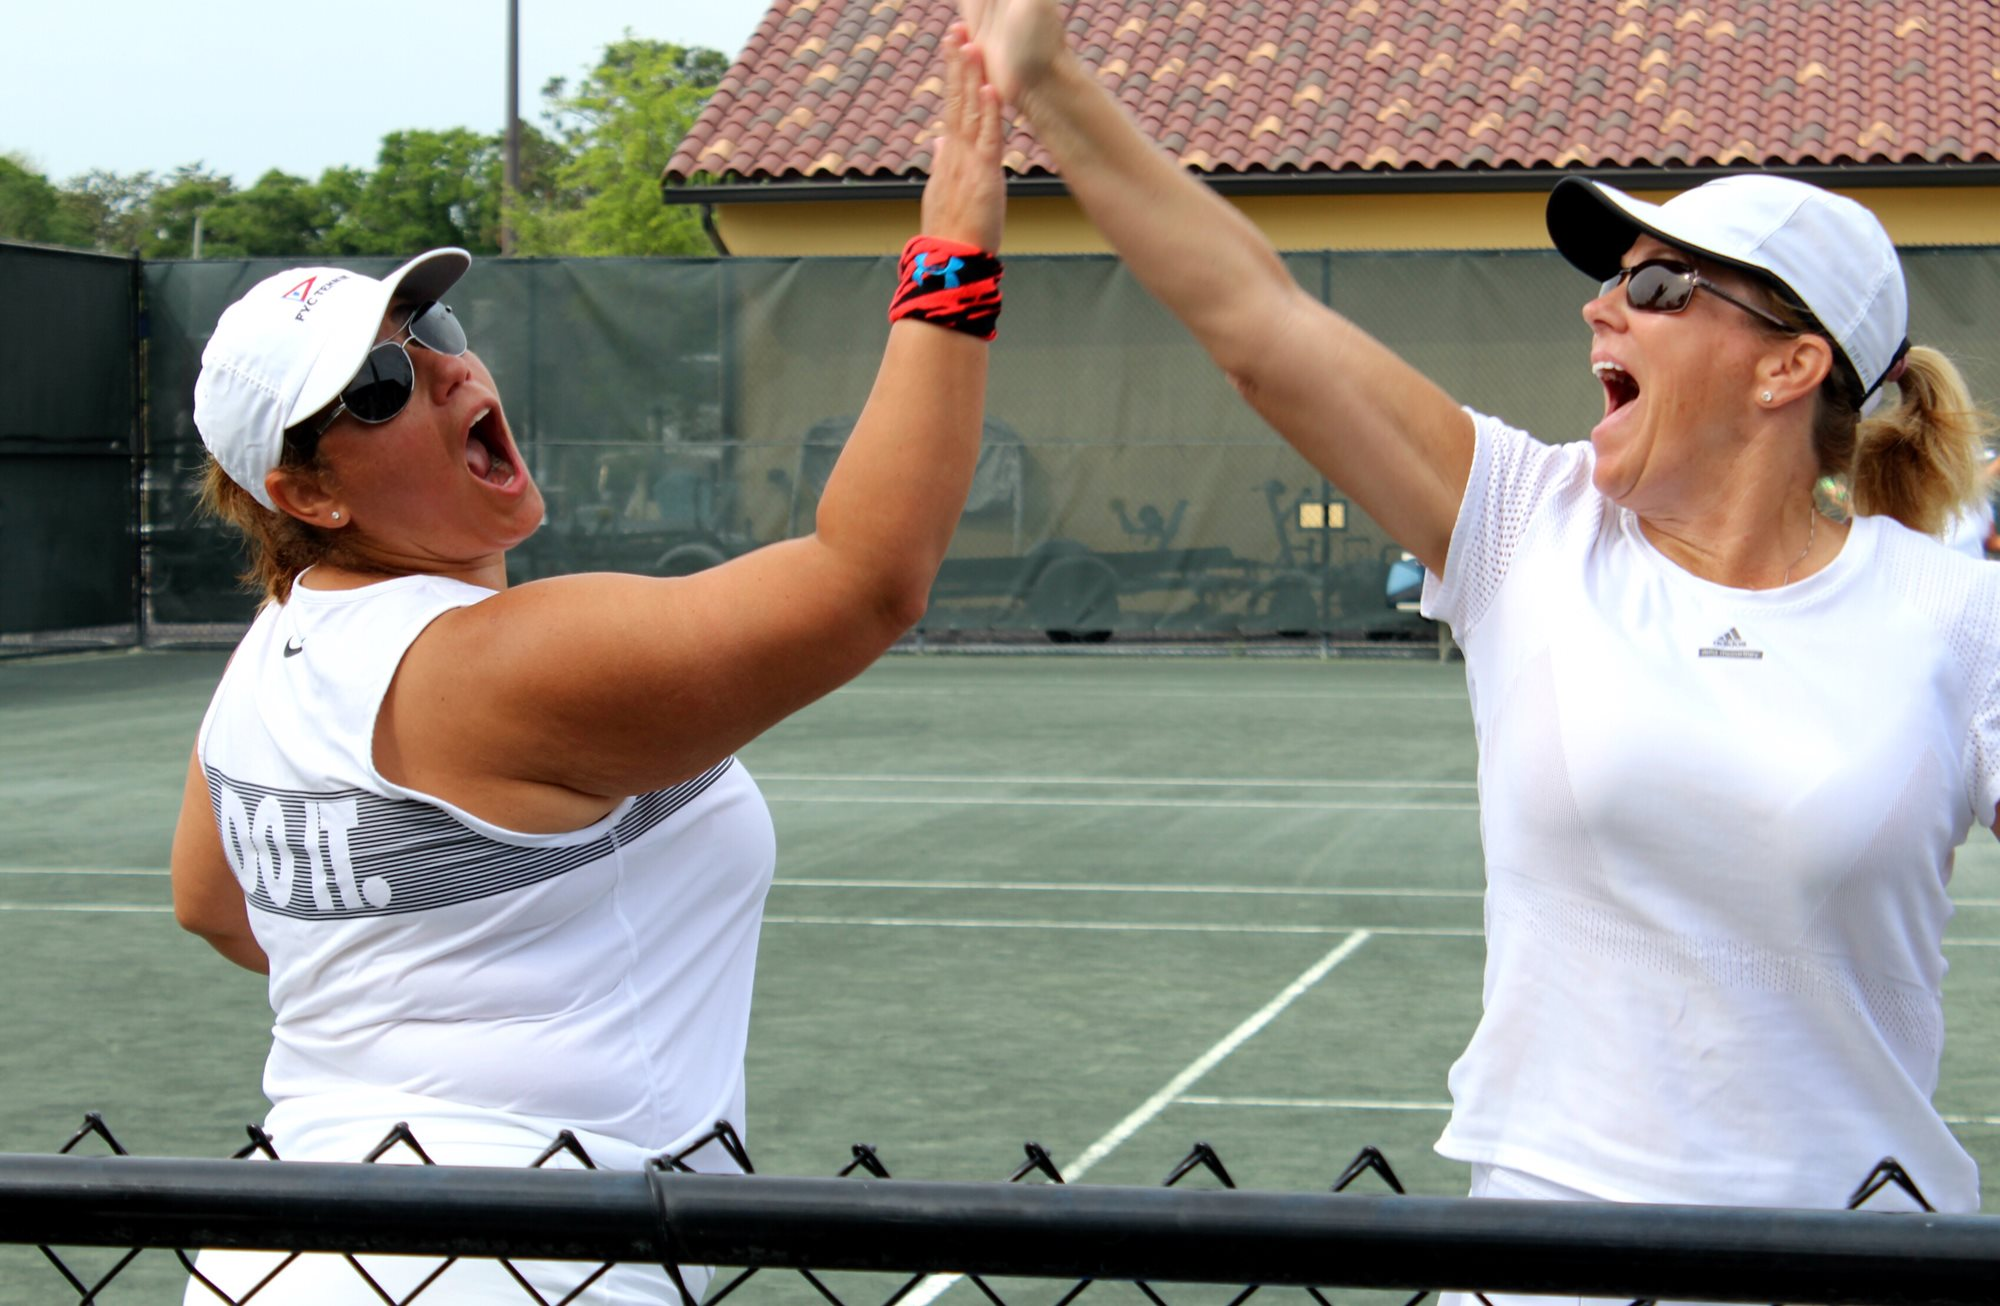 Two tennis players high-fiving